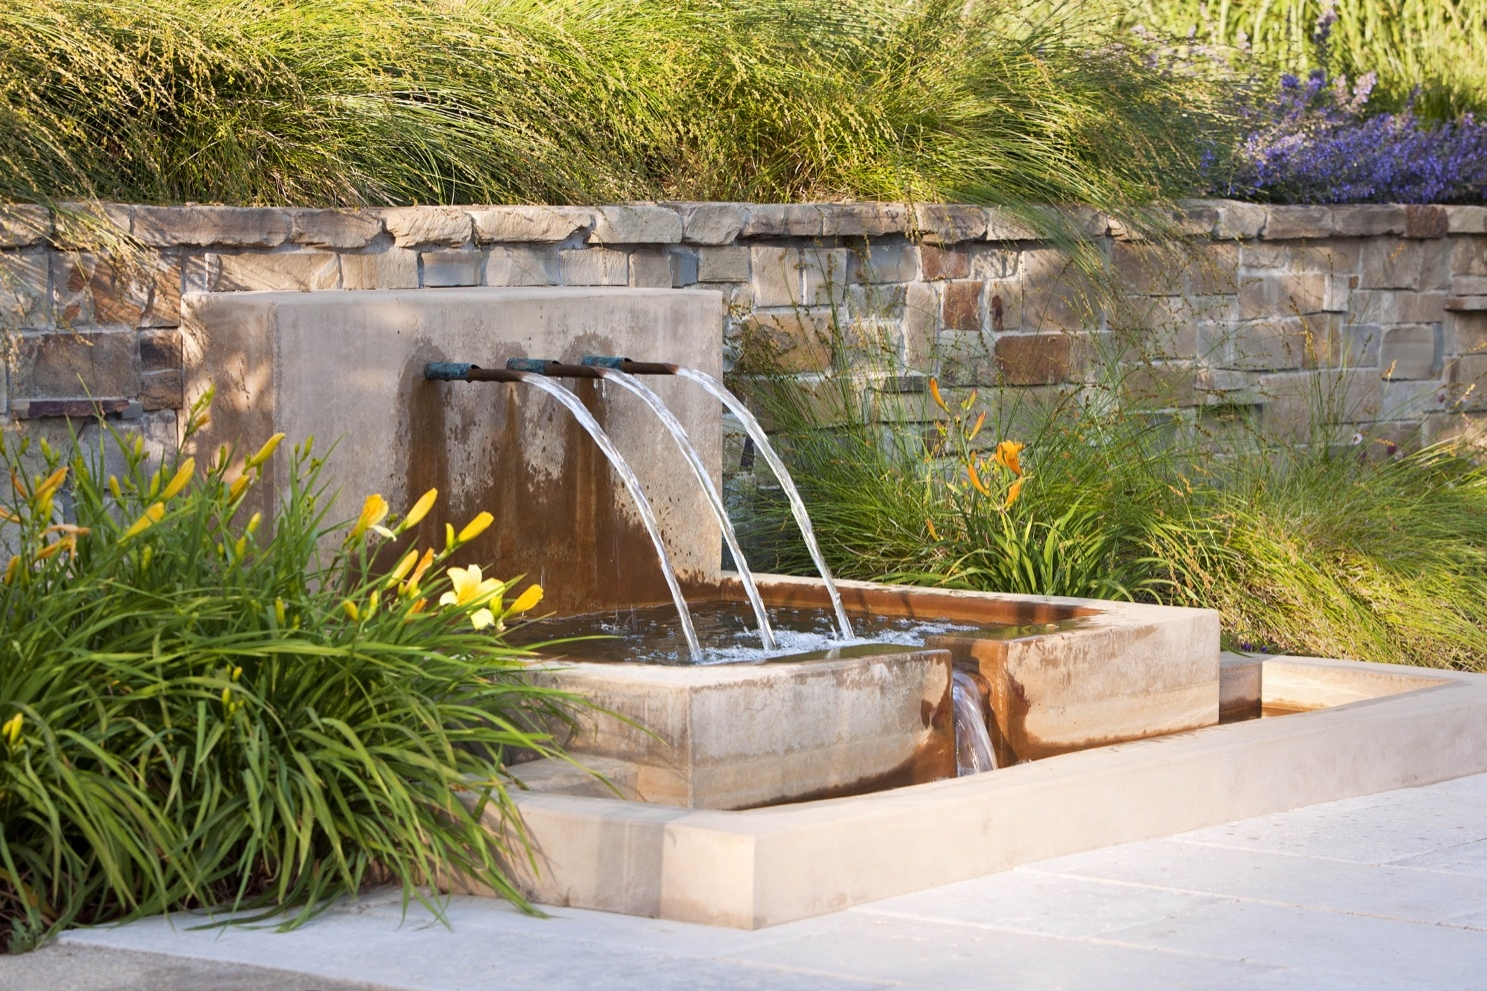 A second fountain provides the soft sound of falling water near a gathering area.